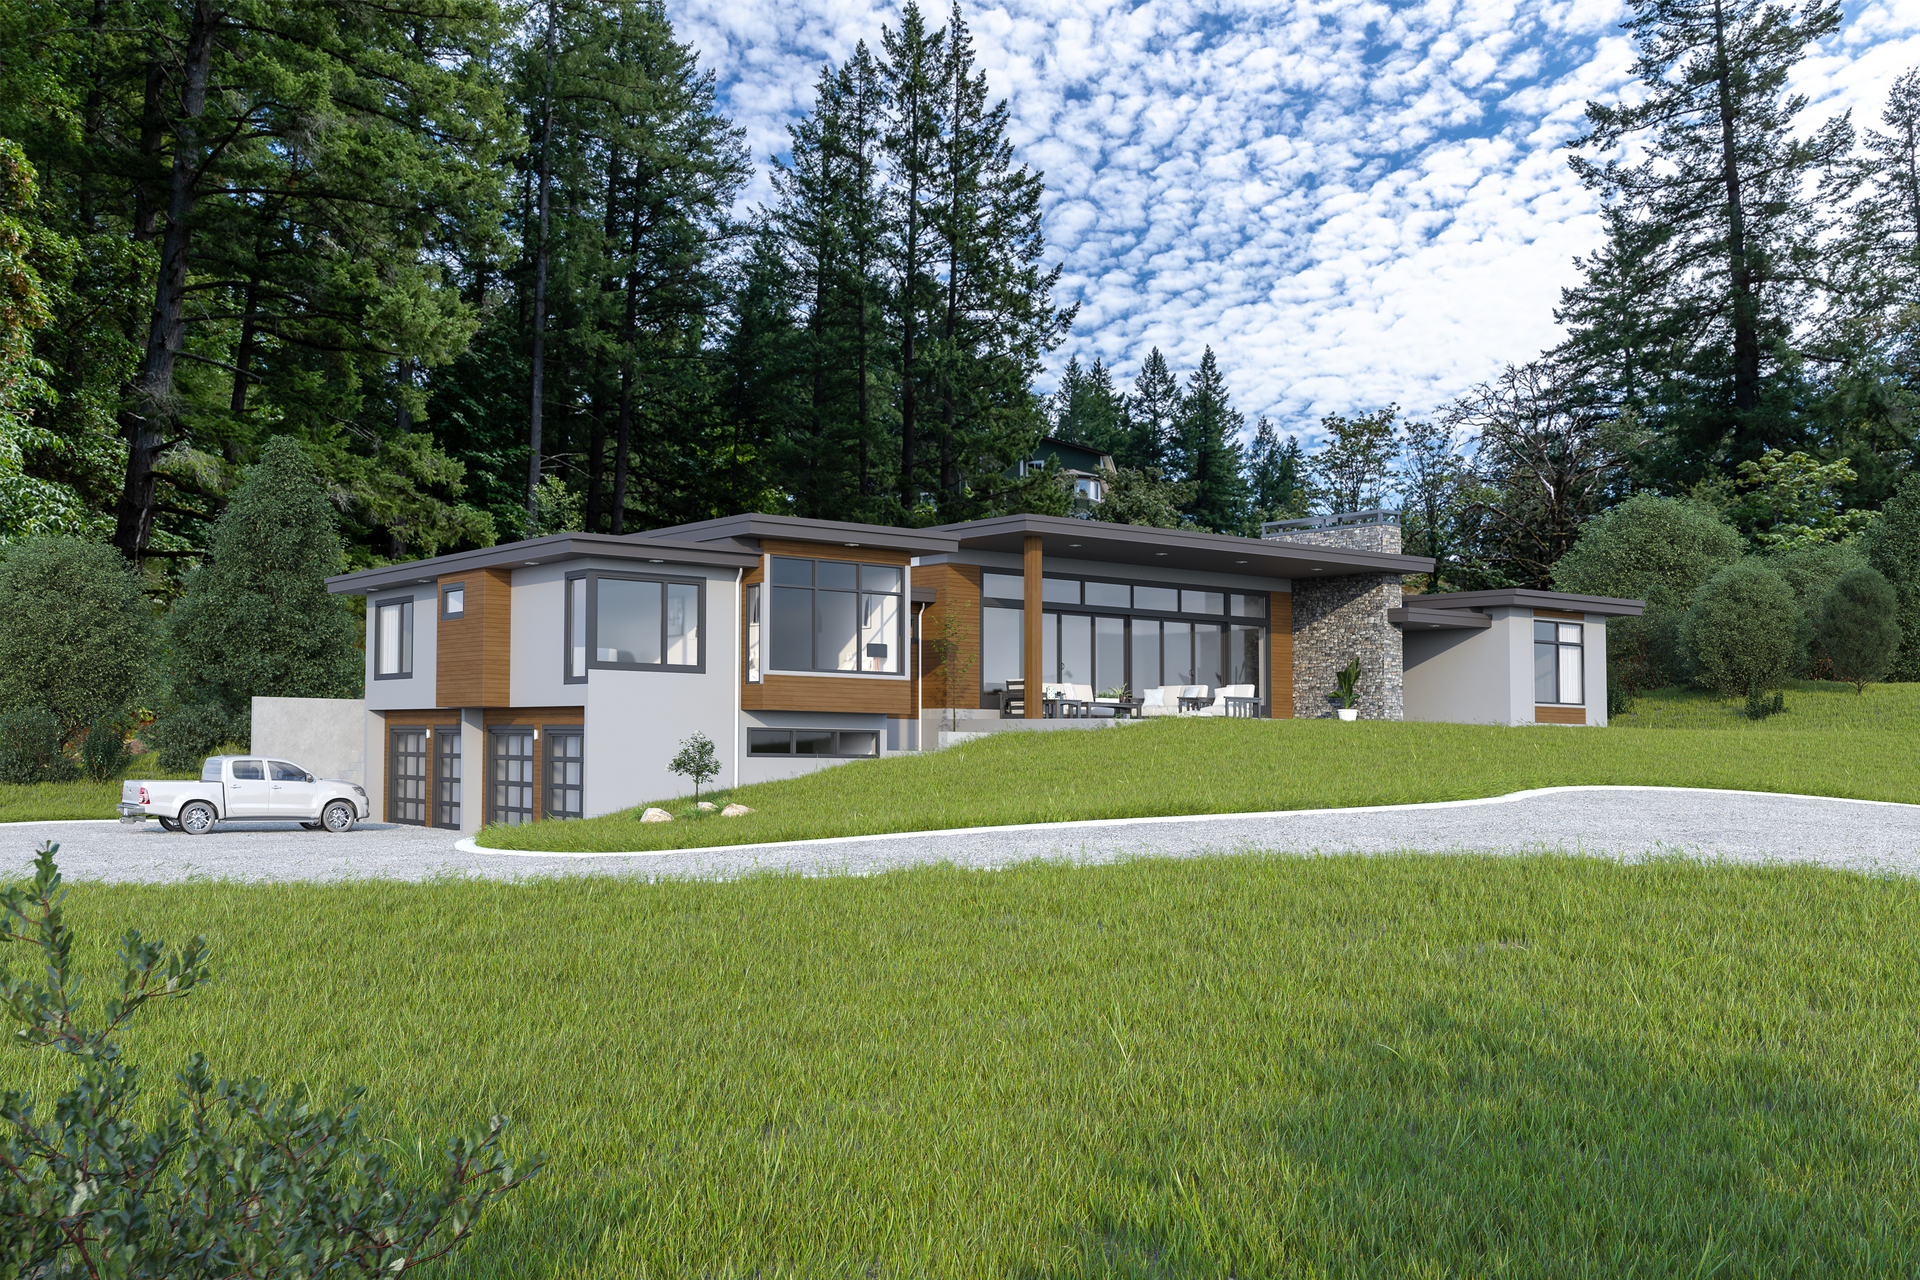 Images Rendered And Not Exact To Finished Product at 5100 Jagtar's Way, Prospect Lake, Saanich West